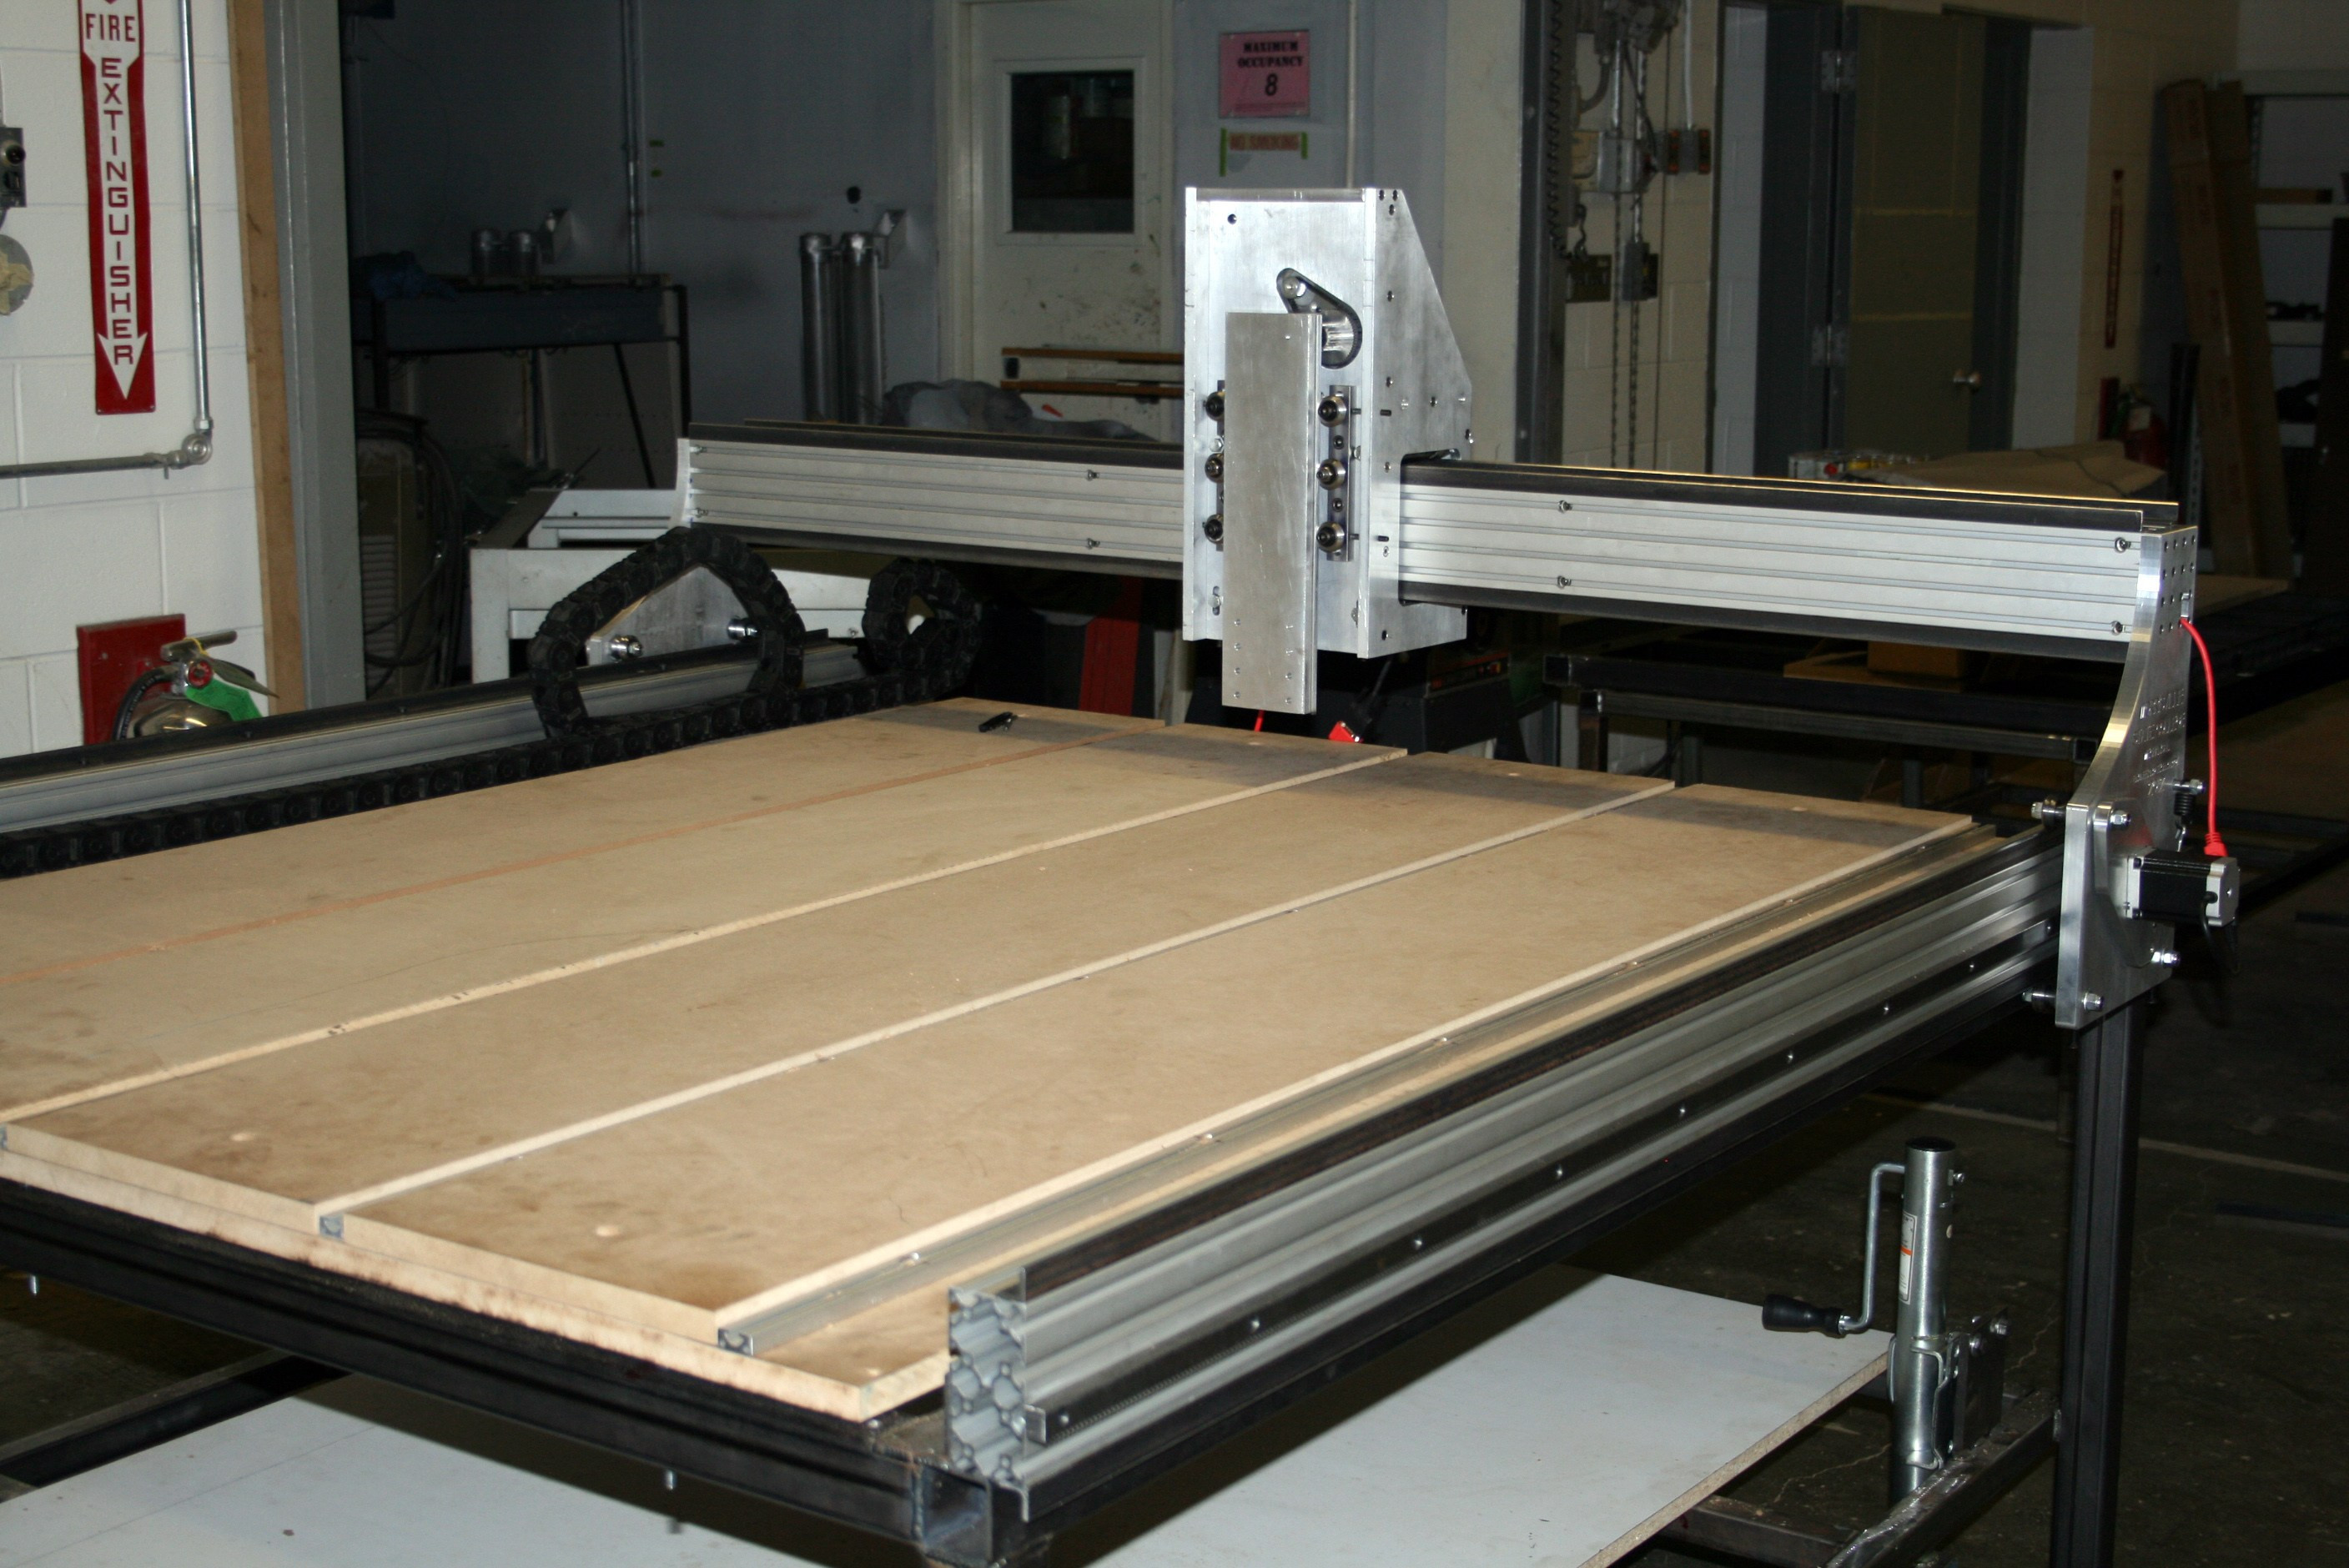 Best ideas about DIY Wood Cnc . Save or Pin Build DIY Homemade cnc router plans pdf Plans Wooden Now.